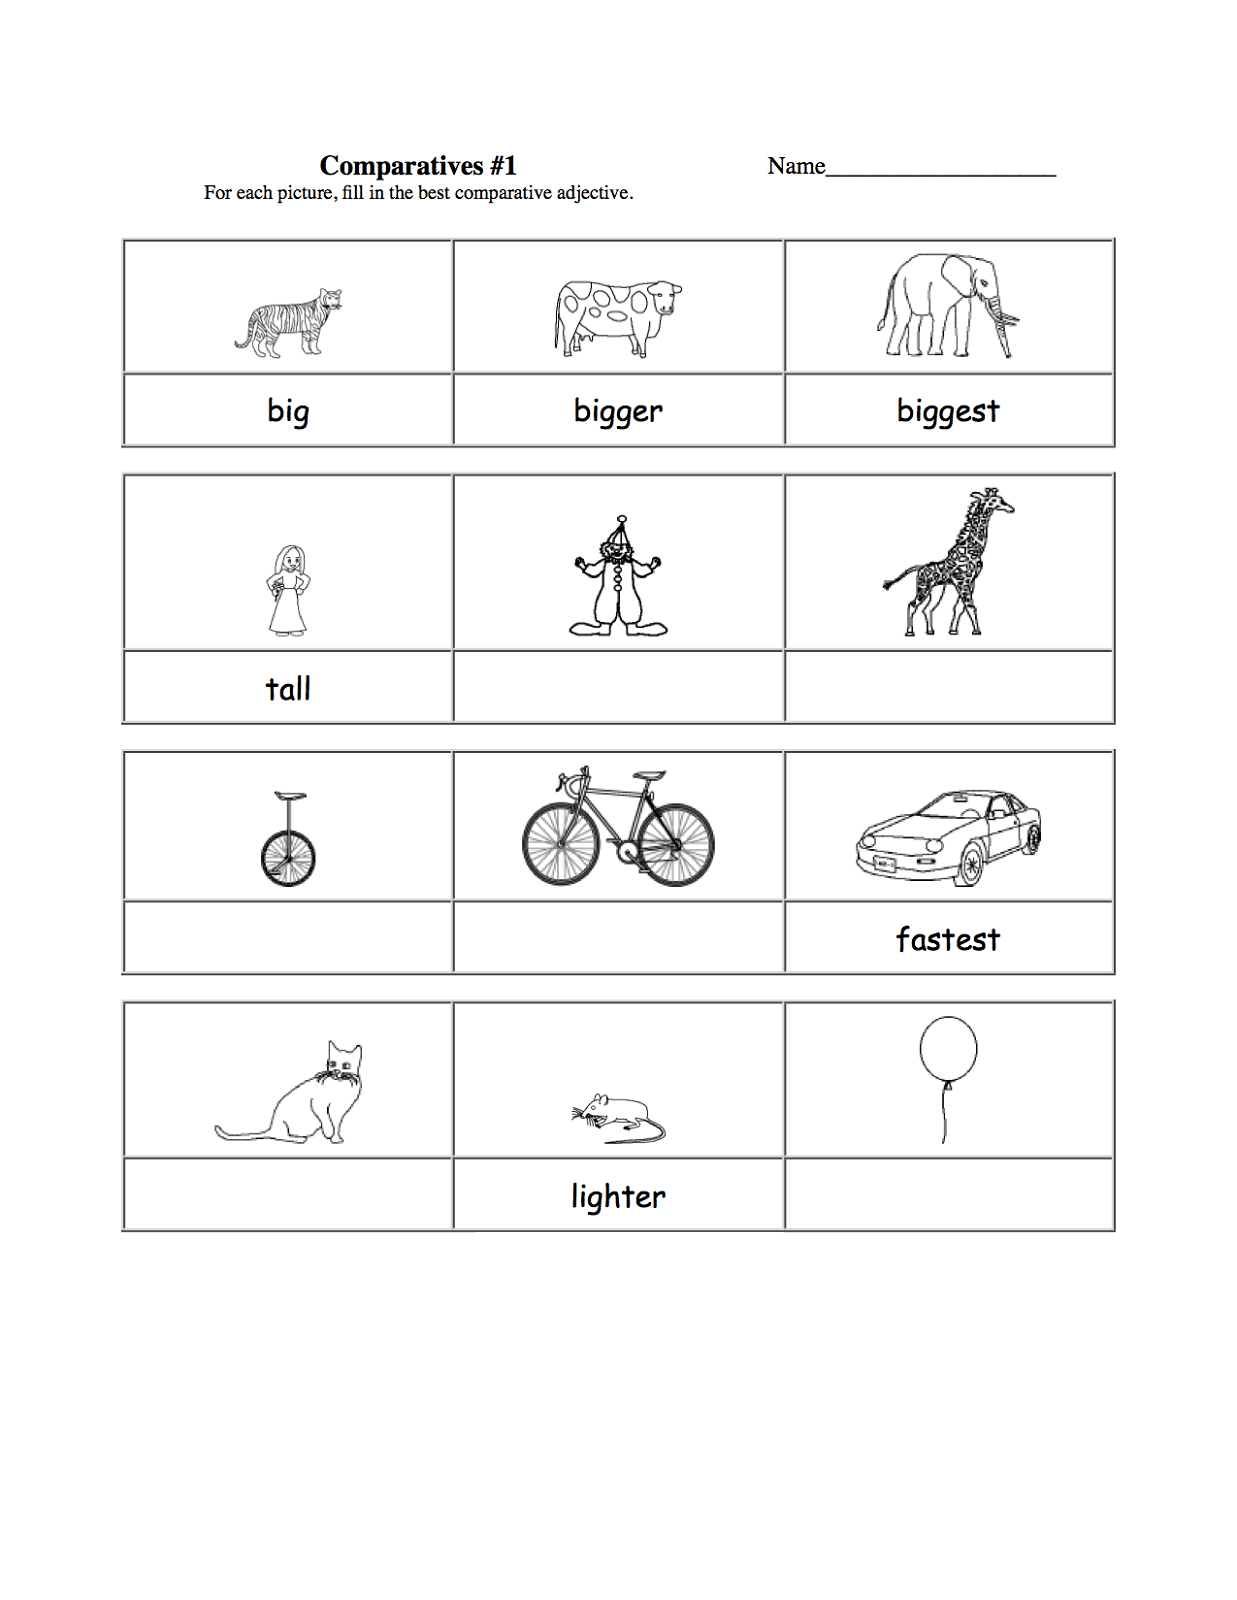 worksheets for 5 year olds comparison - Printable Worksheets For 4 Year Olds